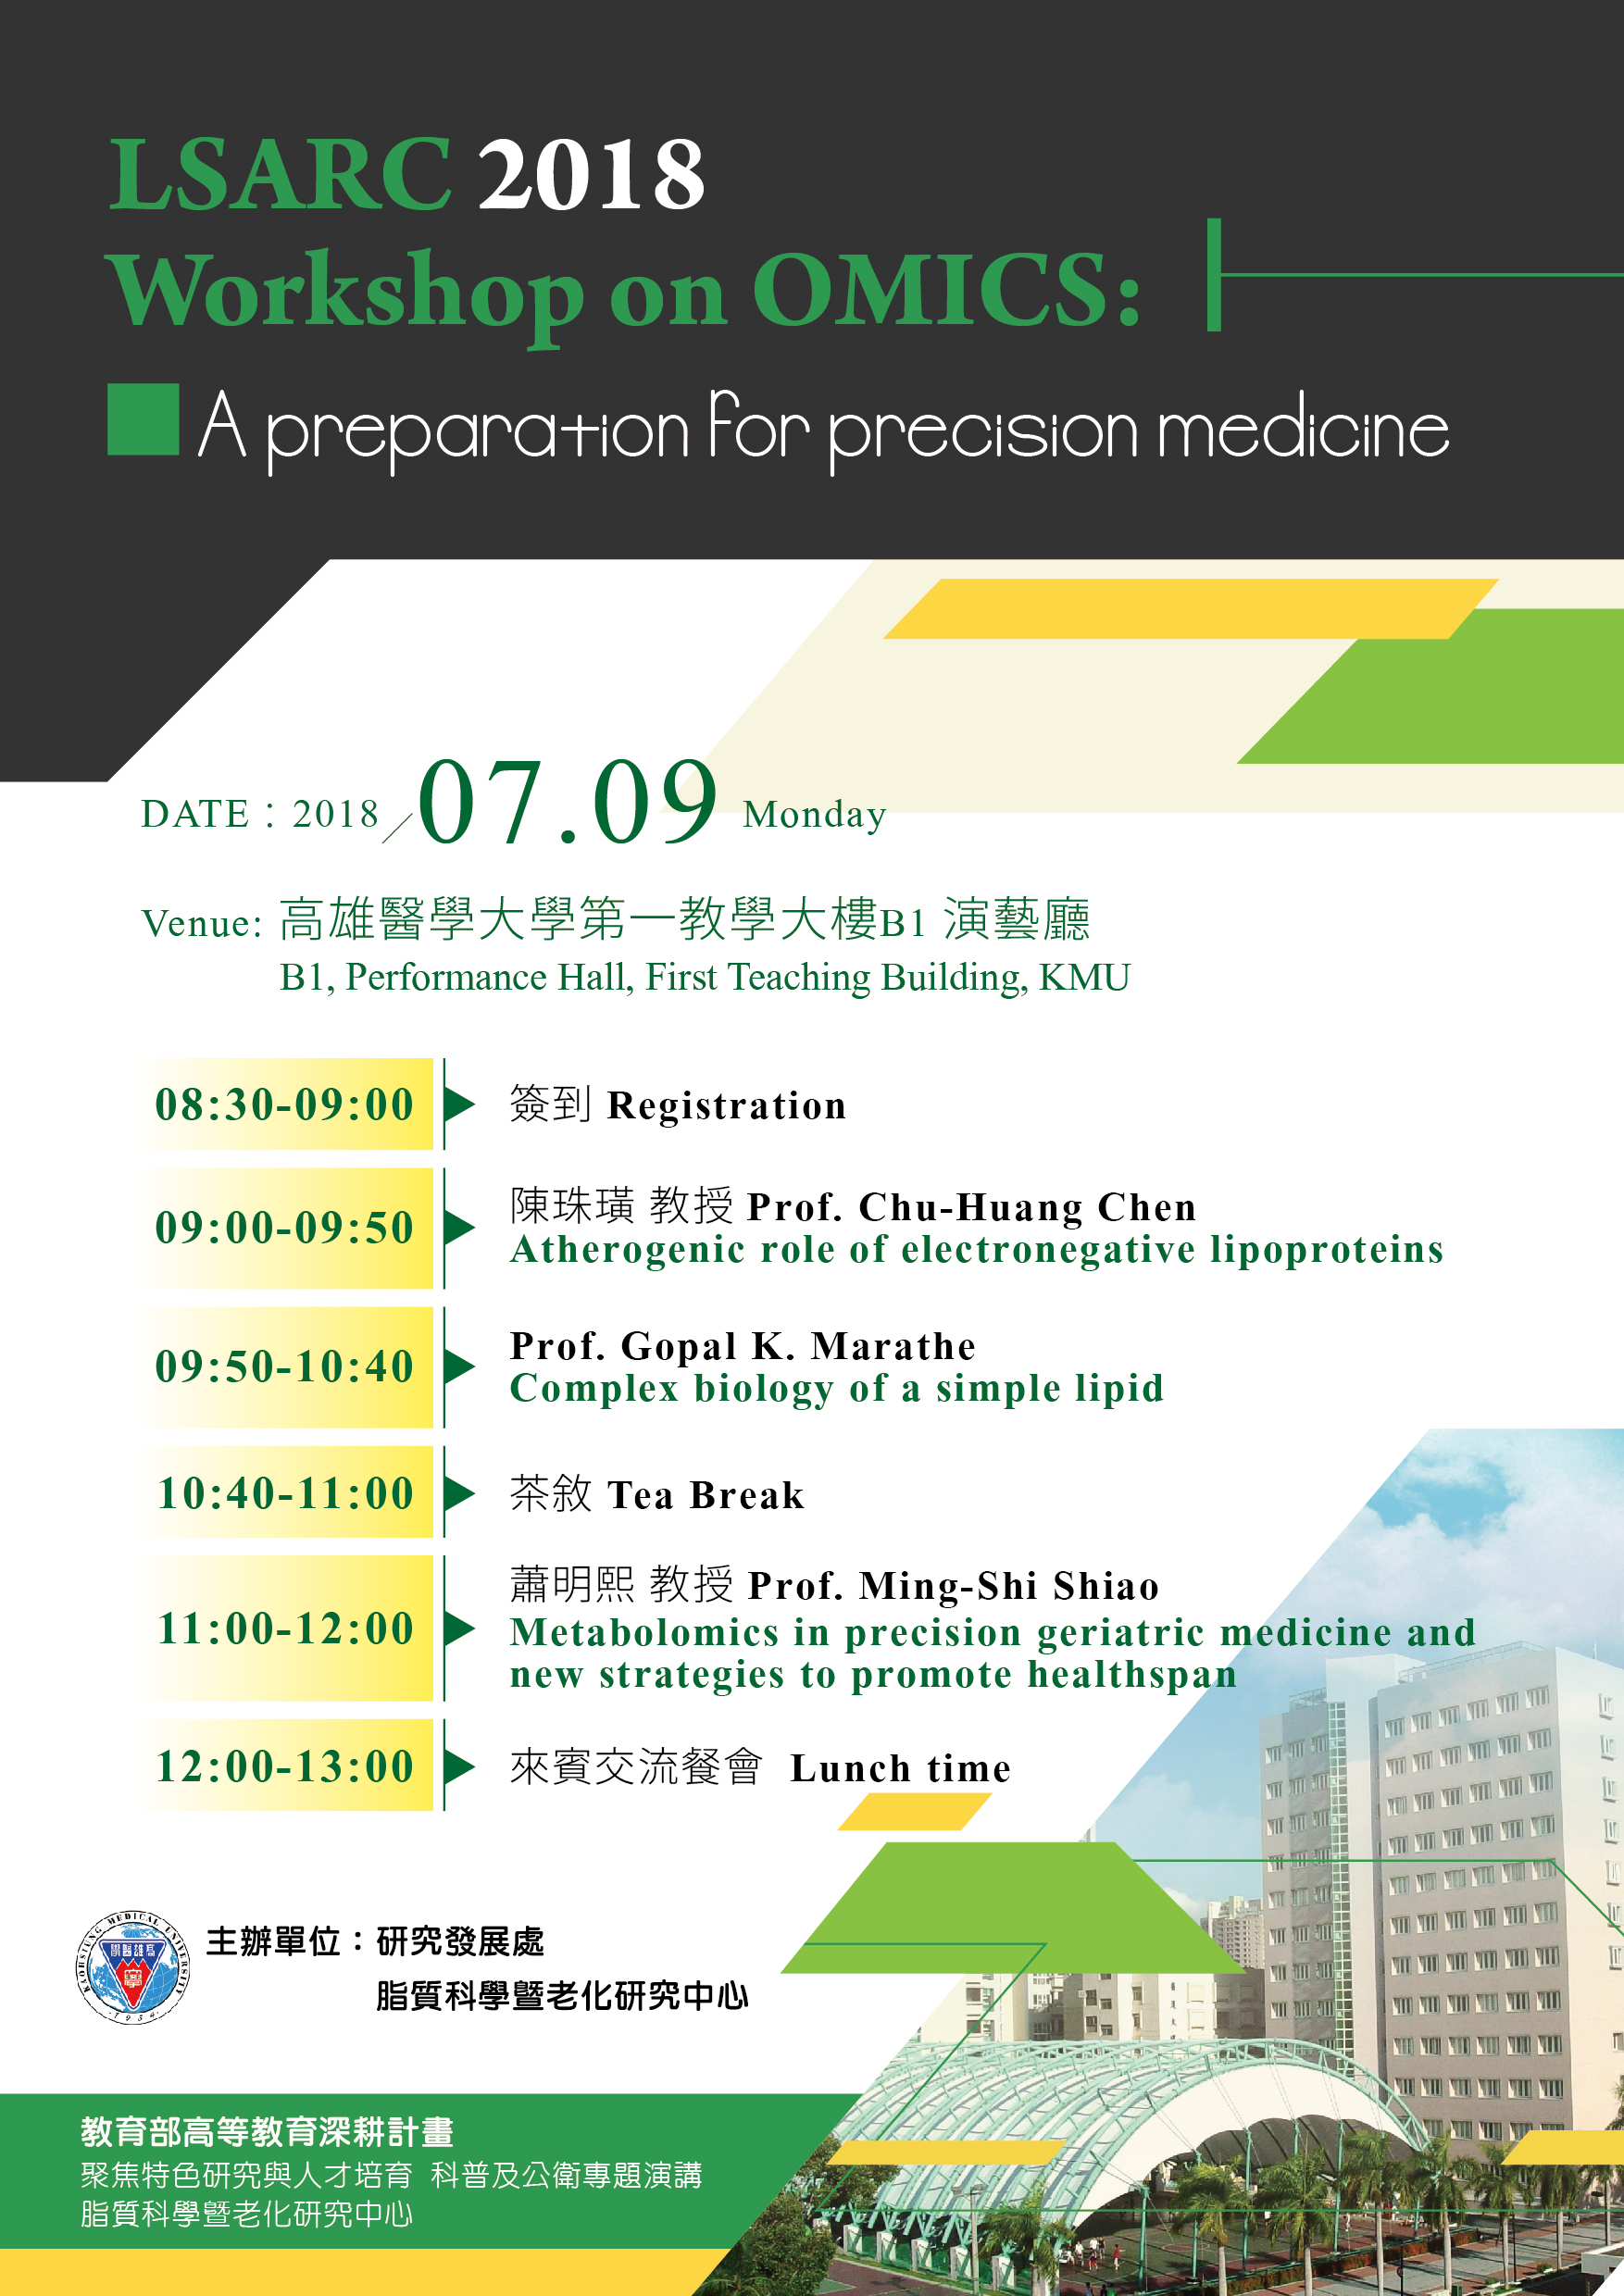 2018.07.09【專題演講】LSARC 2018 Workshop on OMICS: A preparation for precision medicine